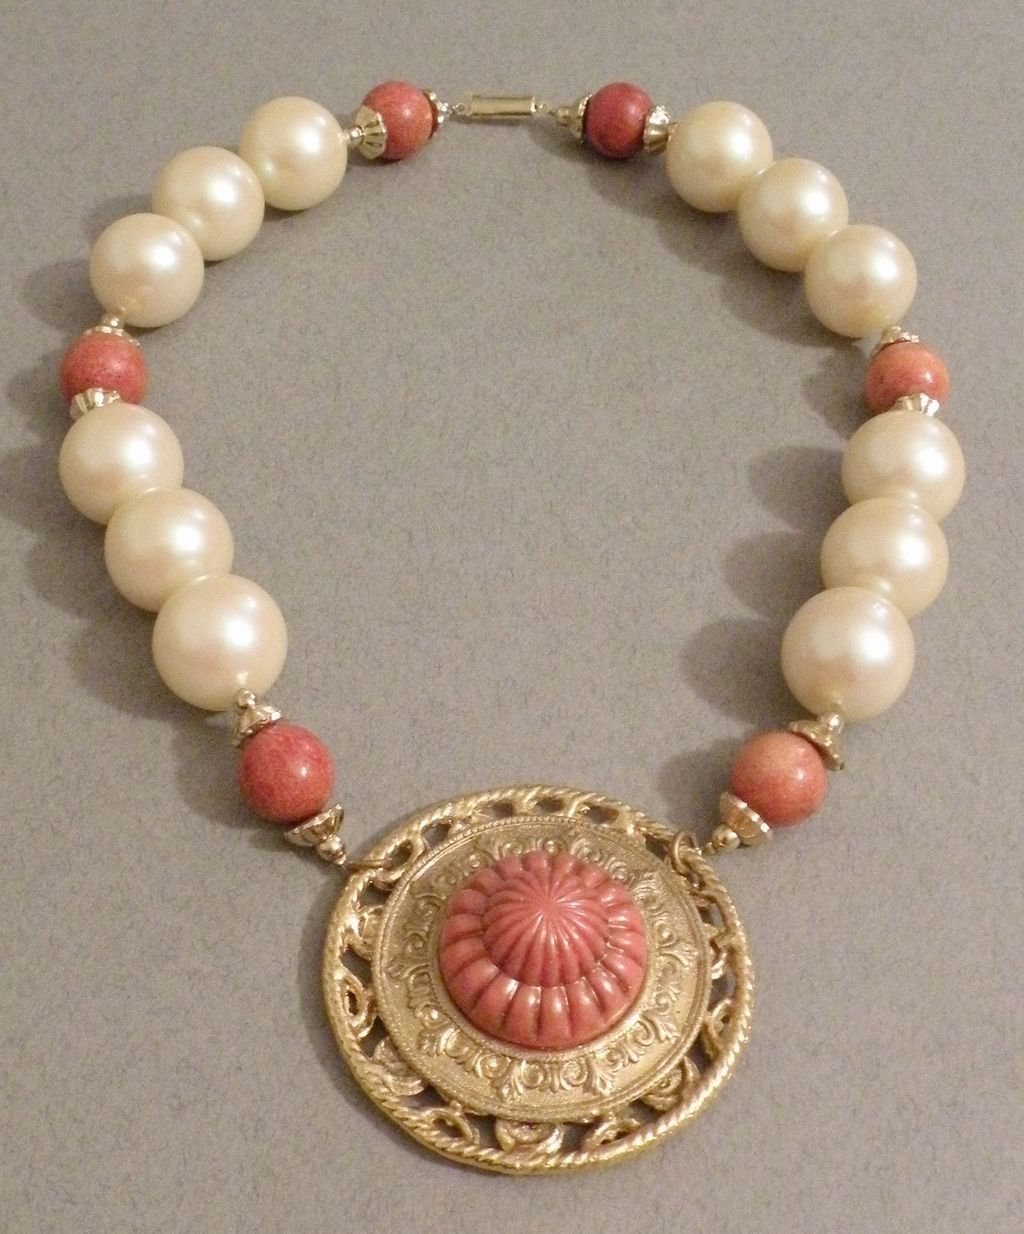 Carved Coral Color and Giant Imitation Pearl Pendant Necklace with Earrings